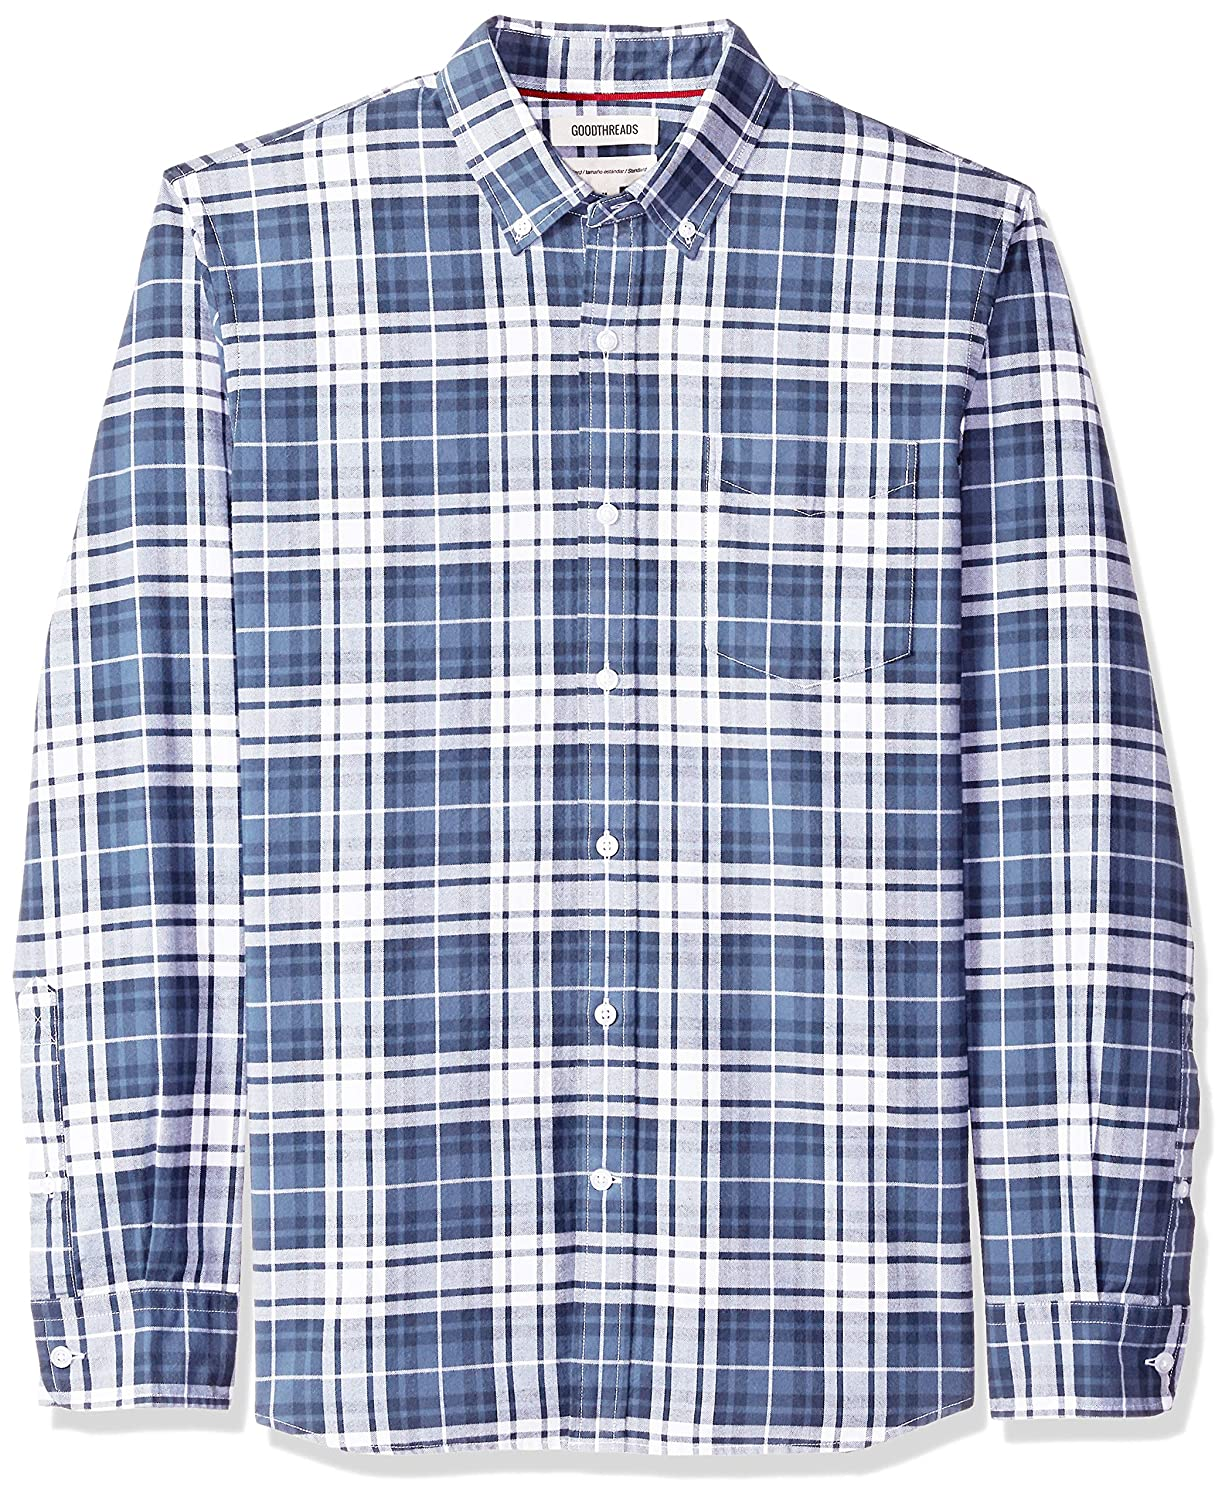 TALLA US XXL (EU XXXL - 4XL). Goodthreads Standard-fit Long-Sleeve Oxford Shirt - Camisa Hombre